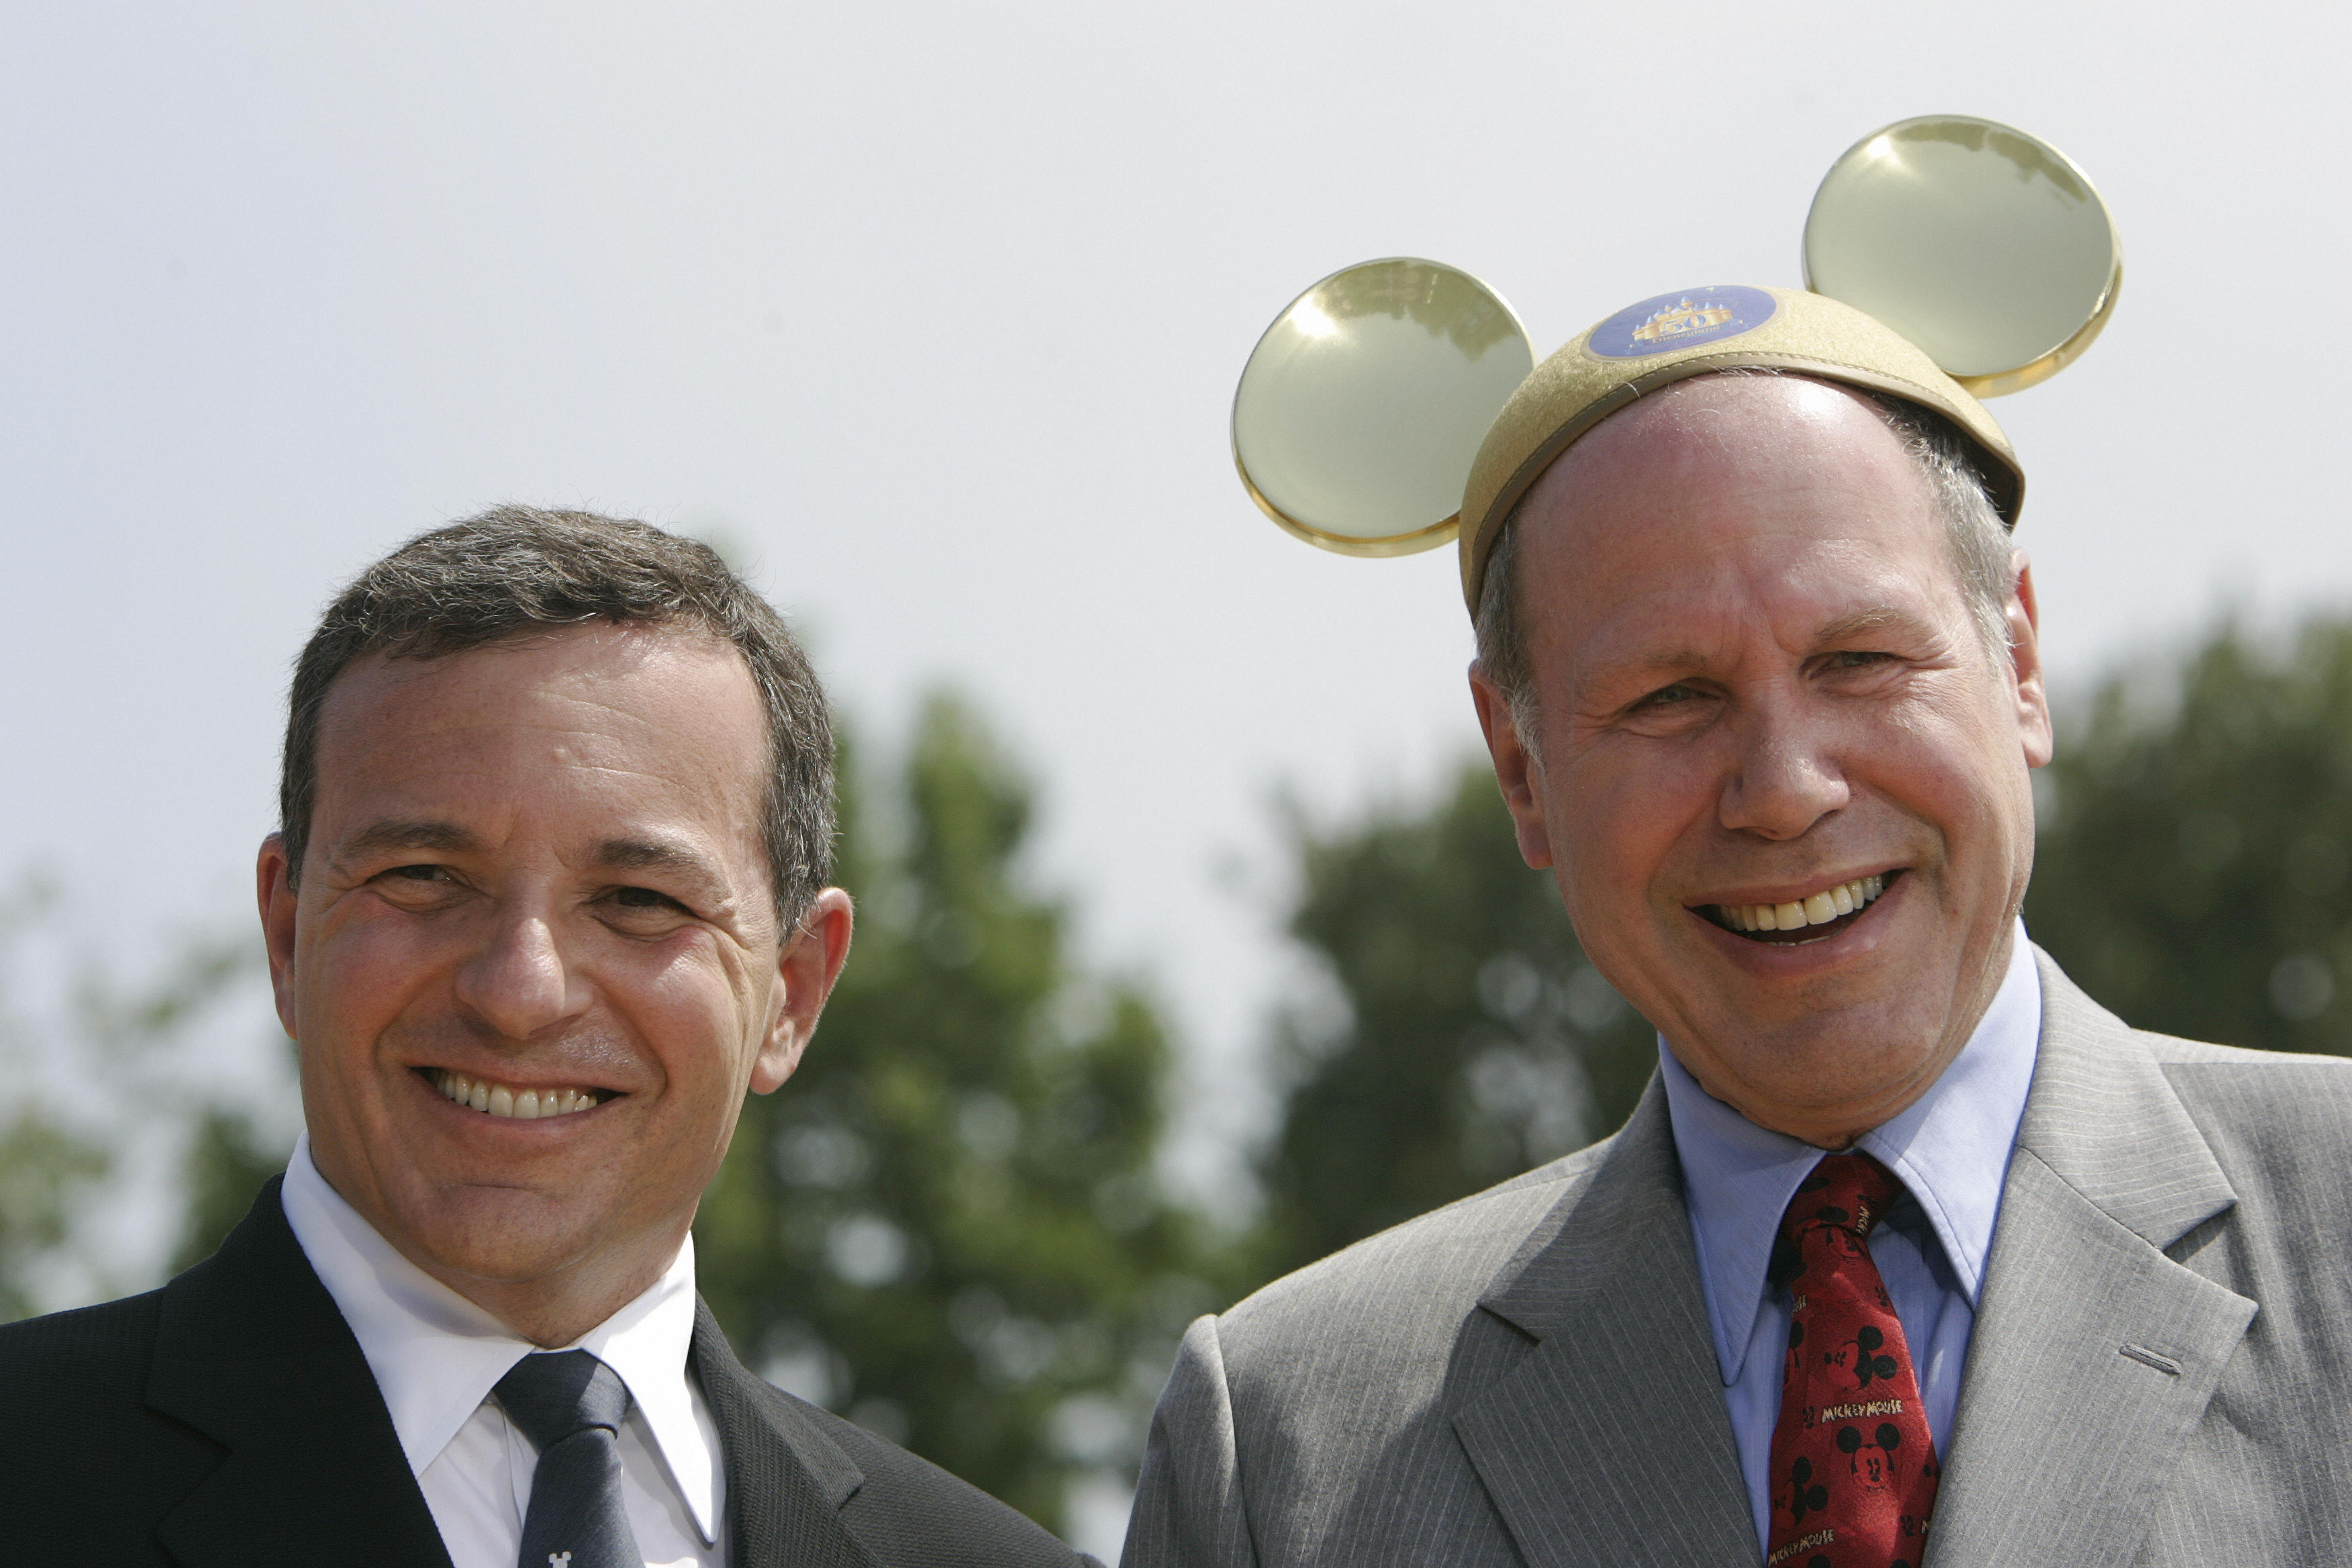 Disney CEO Michael Eisner